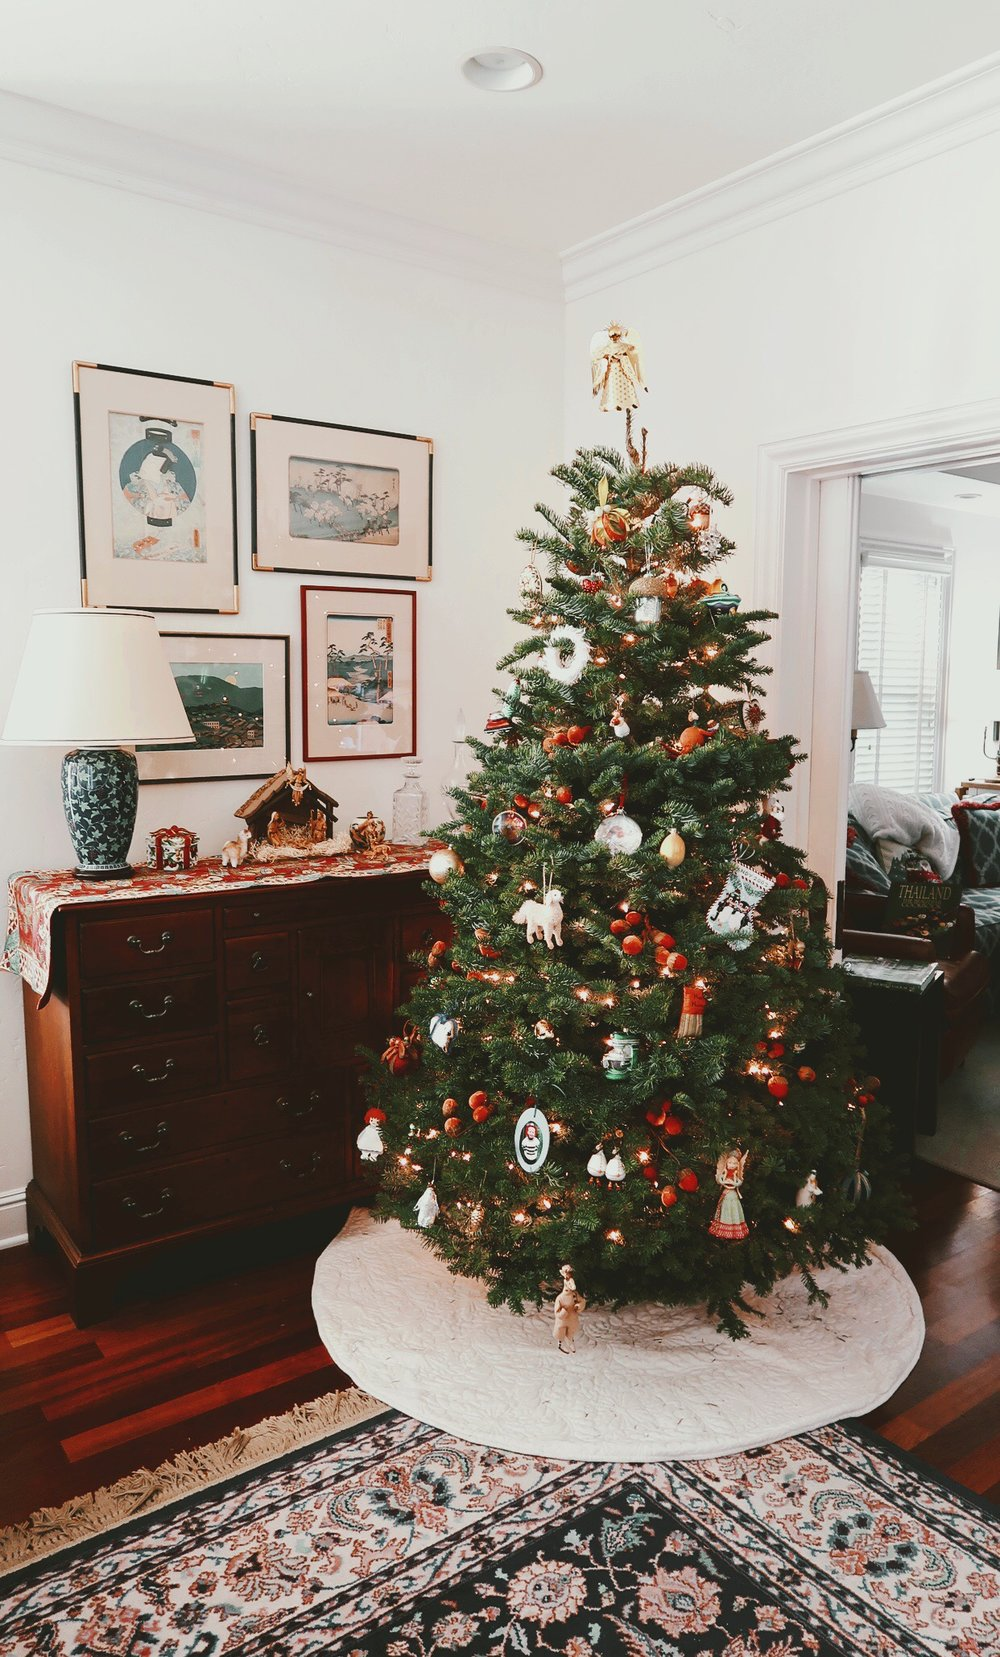 My parent's gorgeous Christmas tree and nativity set up. My favorite ornaments include the vacuum cleaner and alien spaceship (don't ask… or you can!)